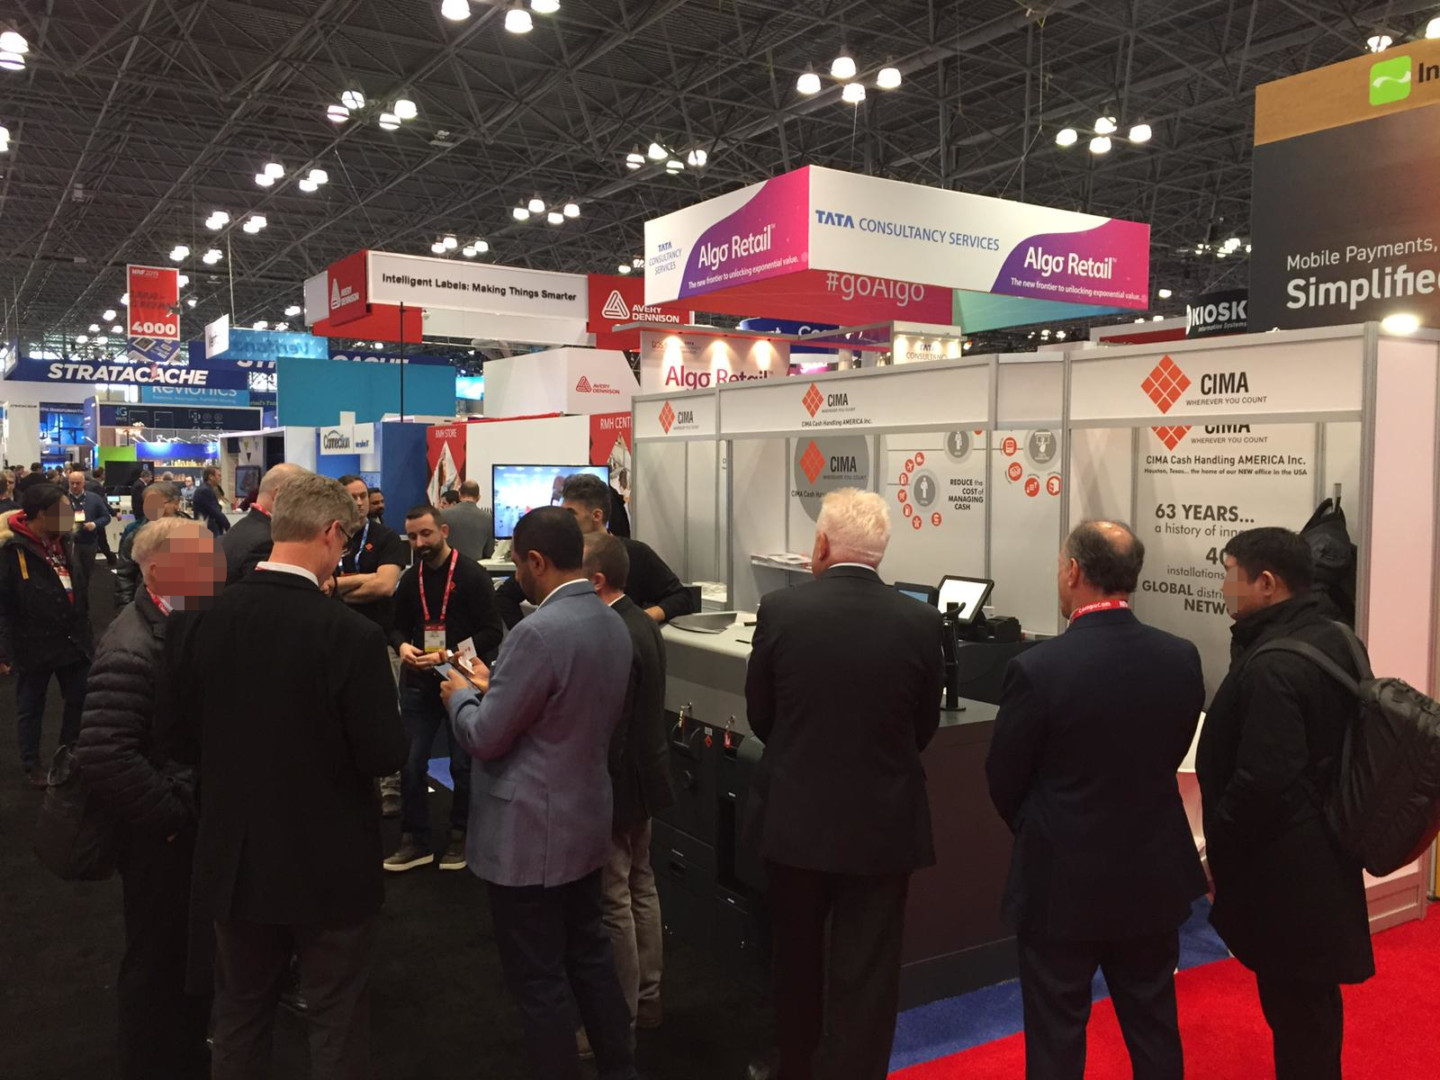 Some shots from NRF 2019 - CIMA